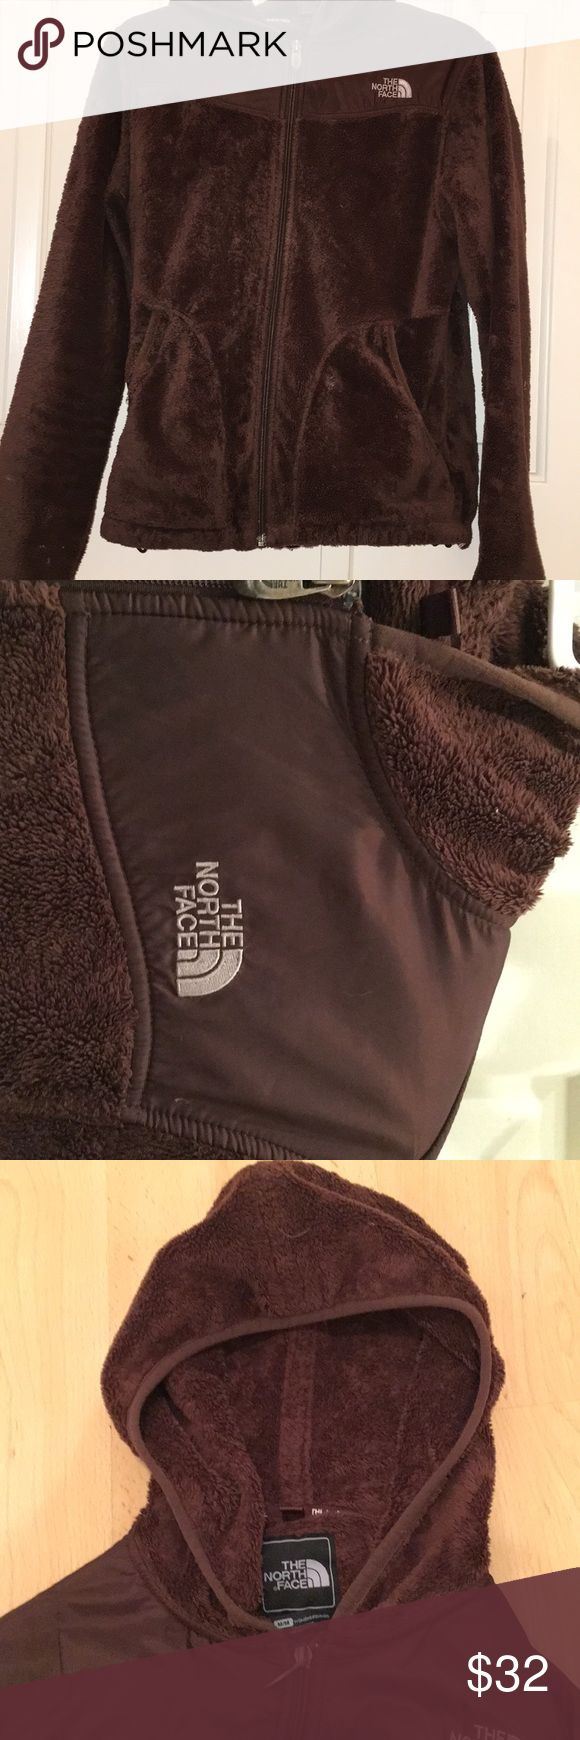 THE NORTH FACE Brown Zip Up Jacked Medium. THE NORTH FACE Brown Zip Up Jacked Medium. Brand New Condition! The North Face Jackets & Coats